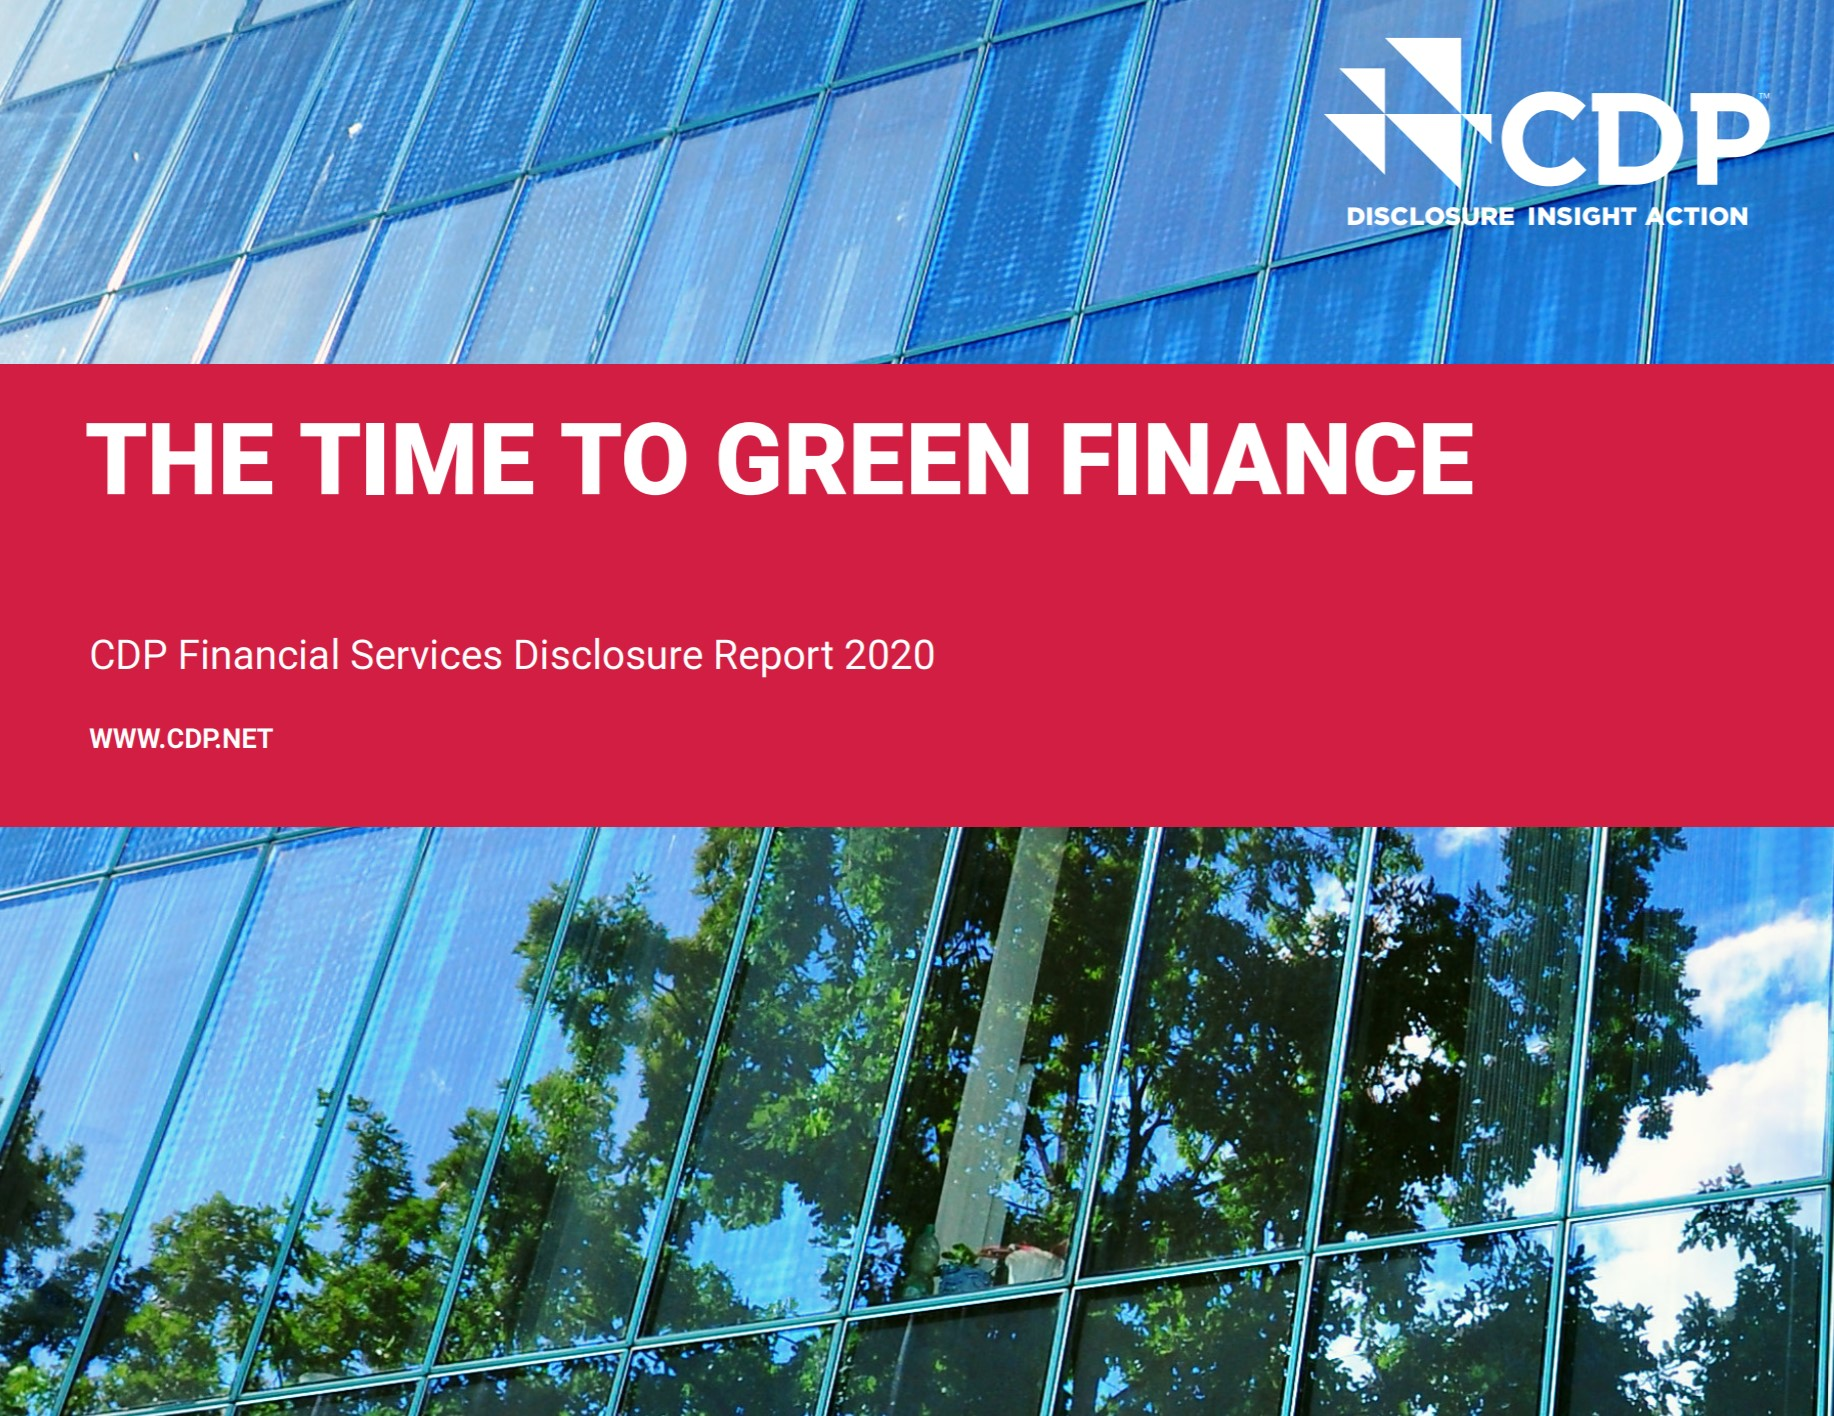 Finance sector's funded emissions over 700 times greater than its own